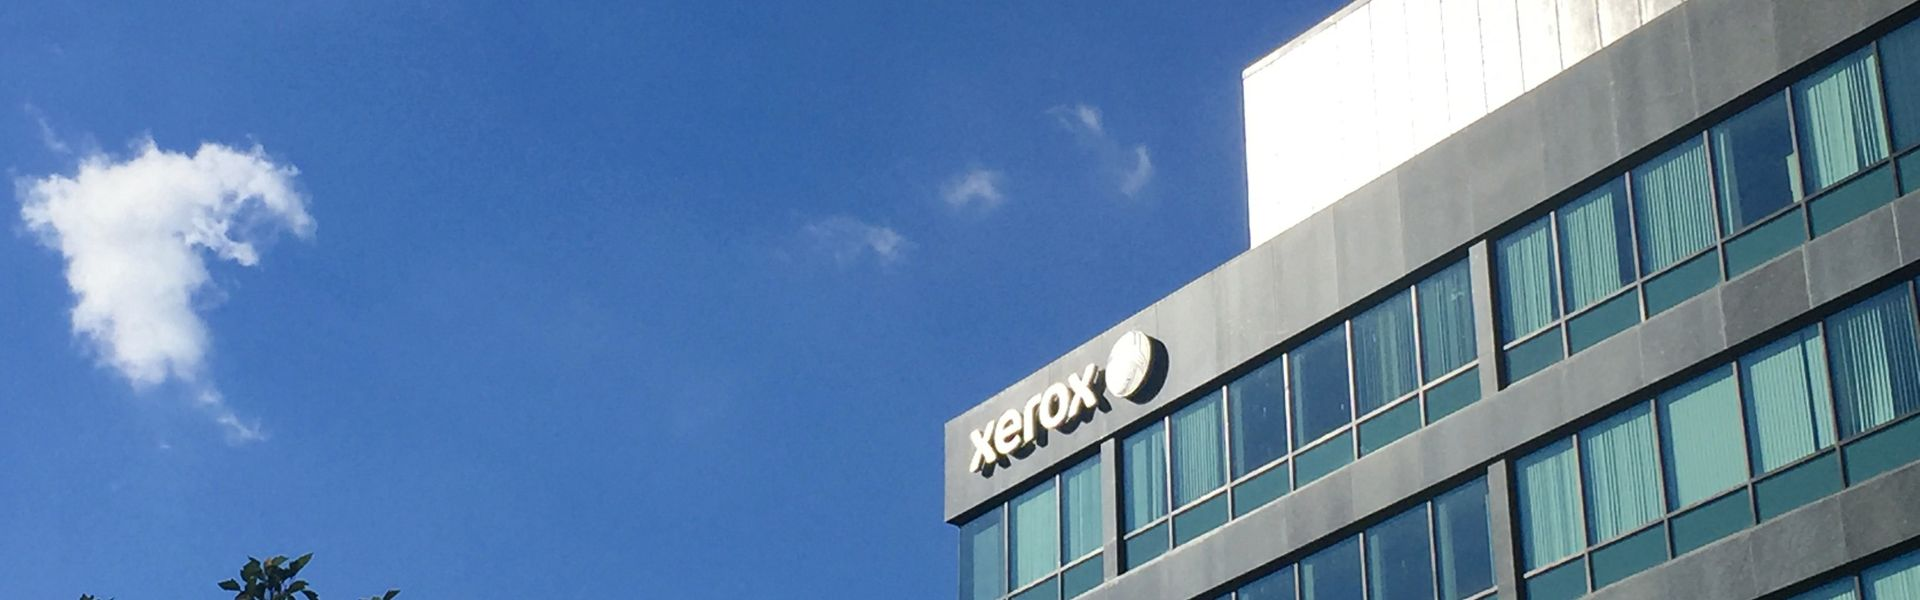 Xerox to Separate into Two Market-Leading Public Companies Following Completion of Comprehensive Structural Review